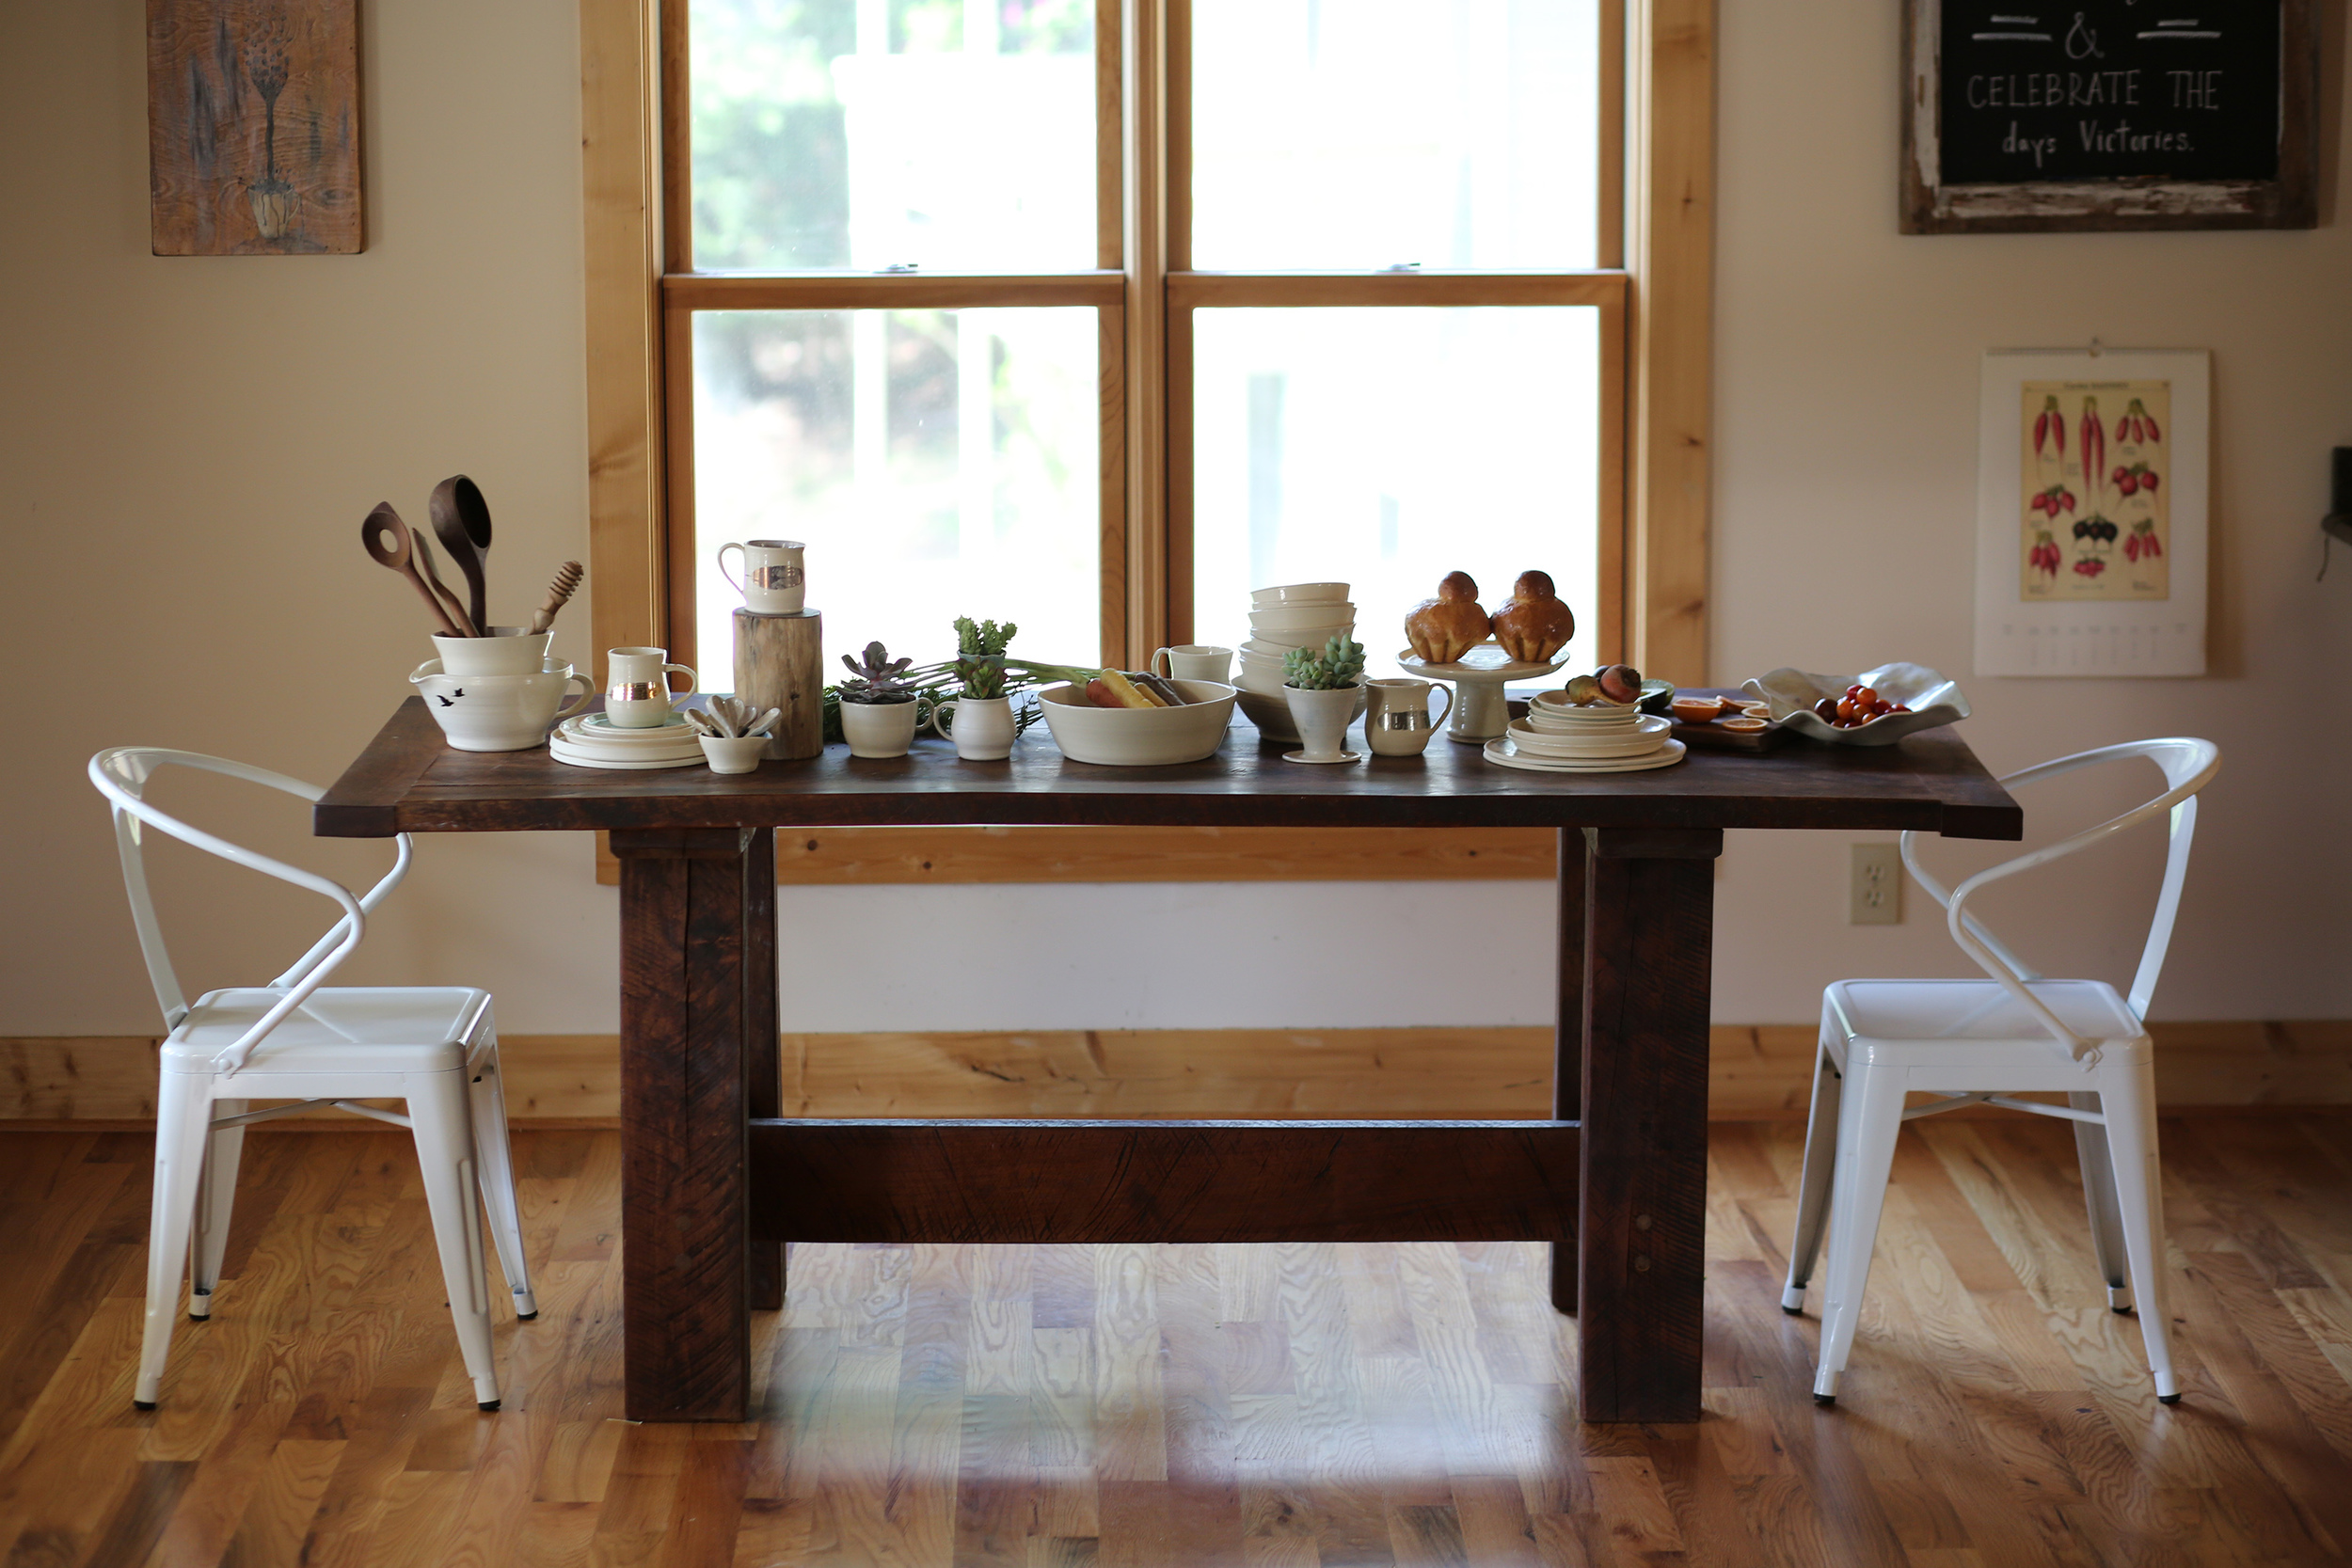 Farm table was crafted by Melina's husband and fellow artist at Overflow Studios.